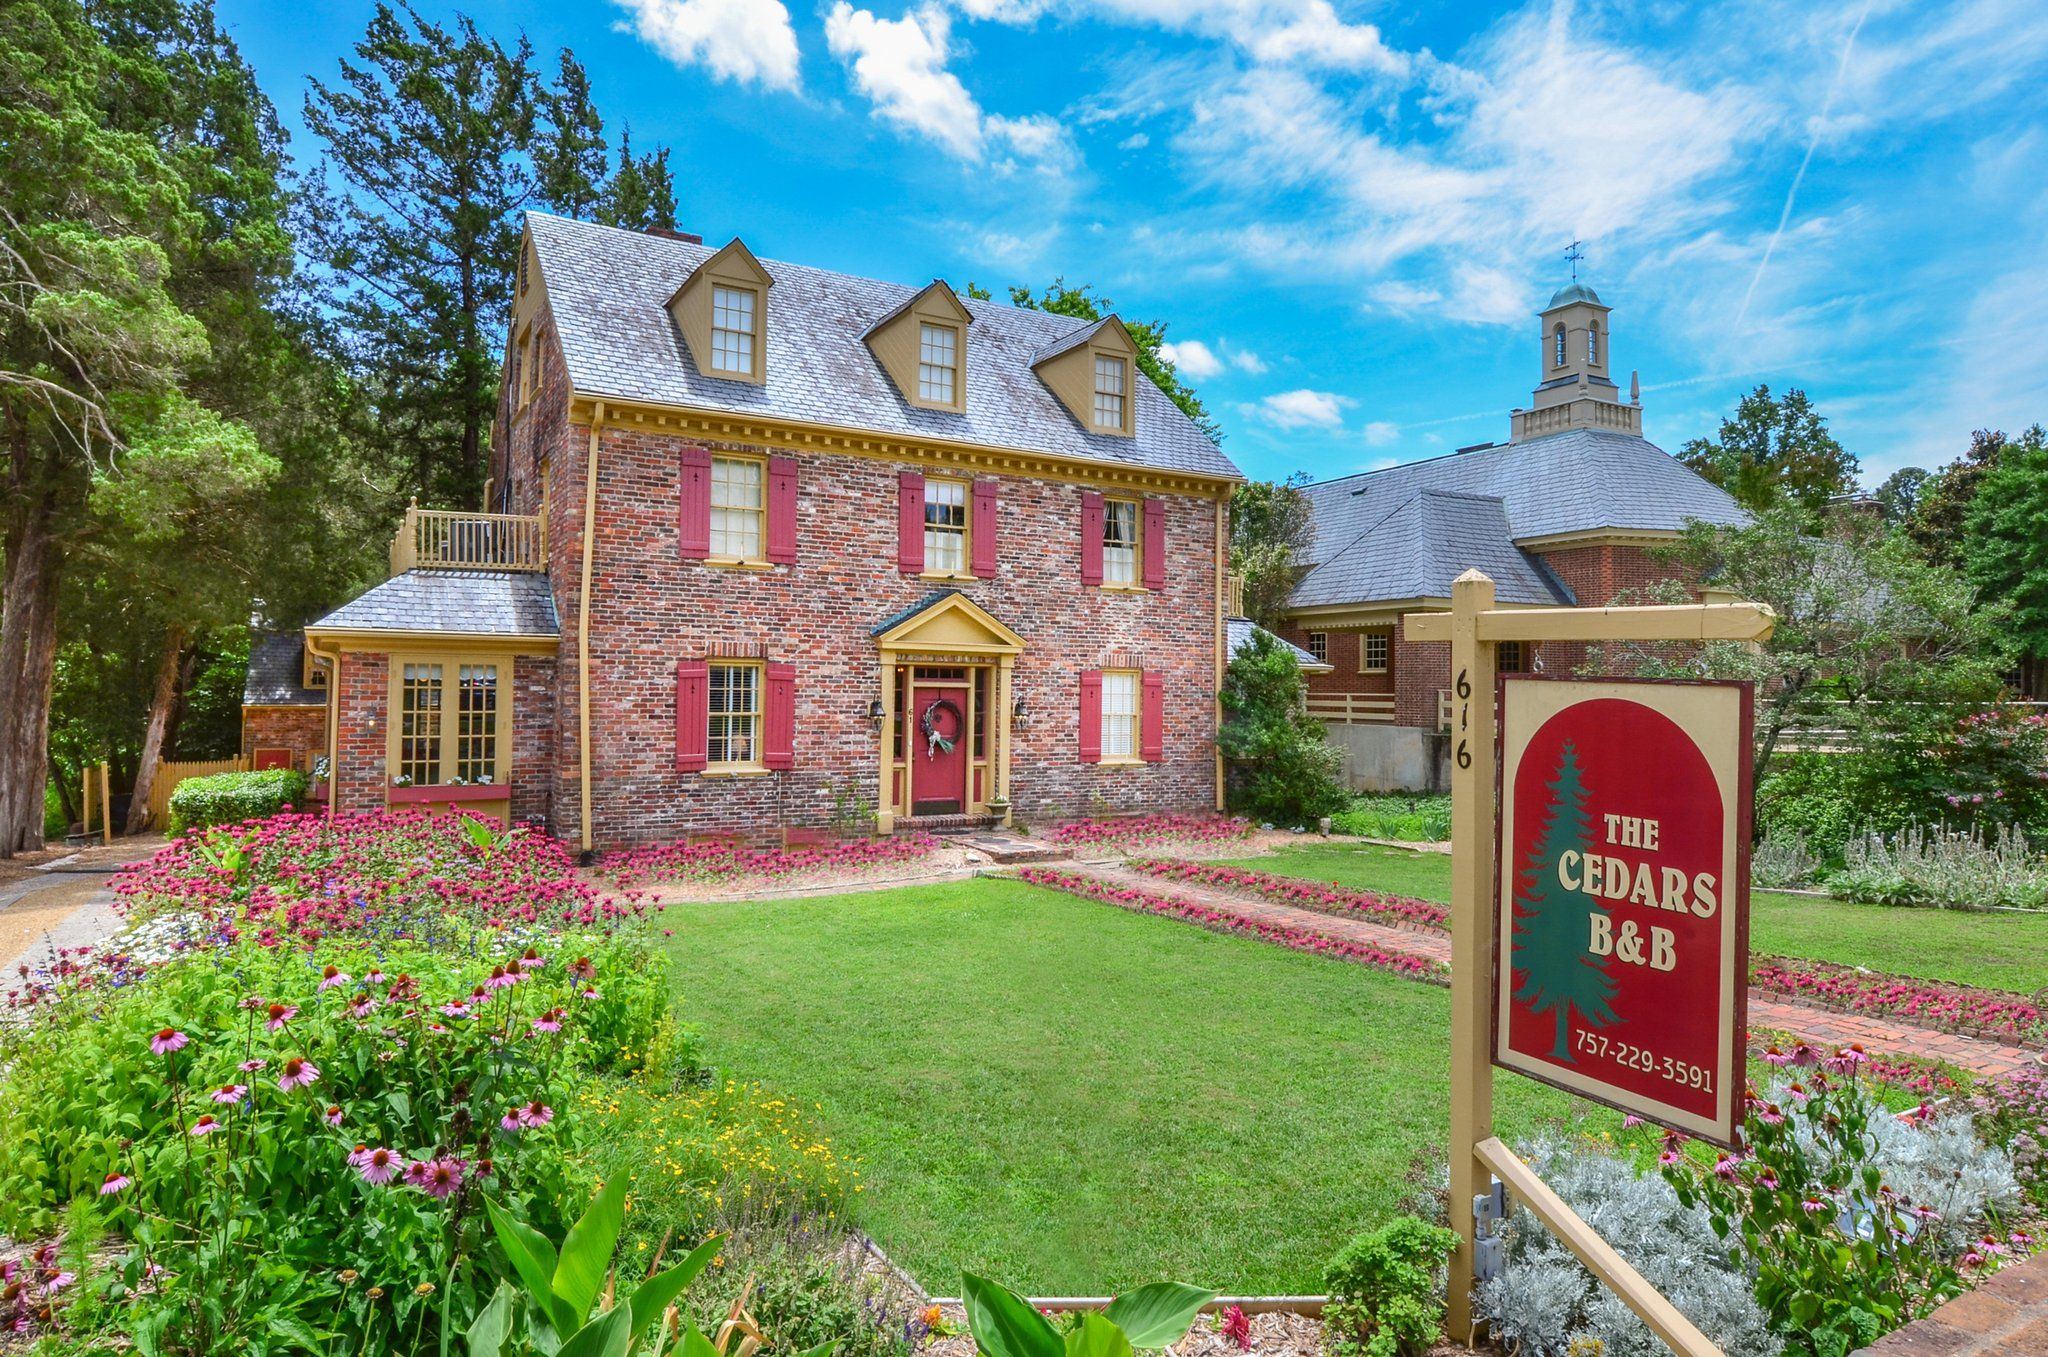 Tour The Inn The Cedars of Williamsburg Bed & Breakfast